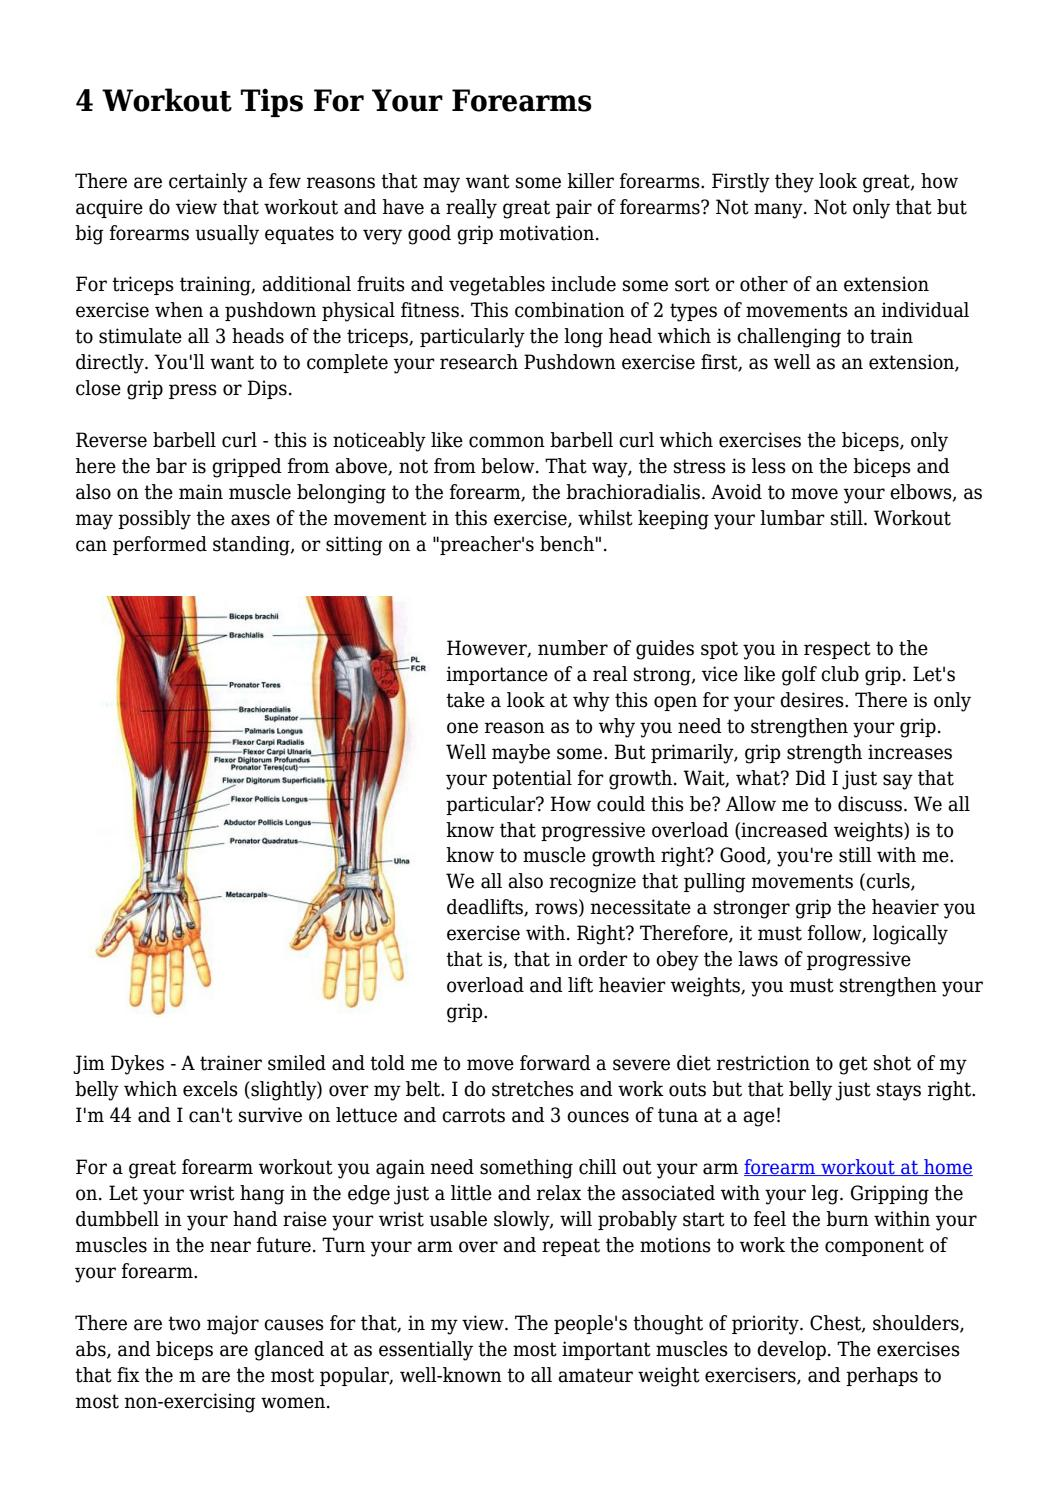 4 Workout Tips For Your Forearms By Skylifestylemedia Issuu